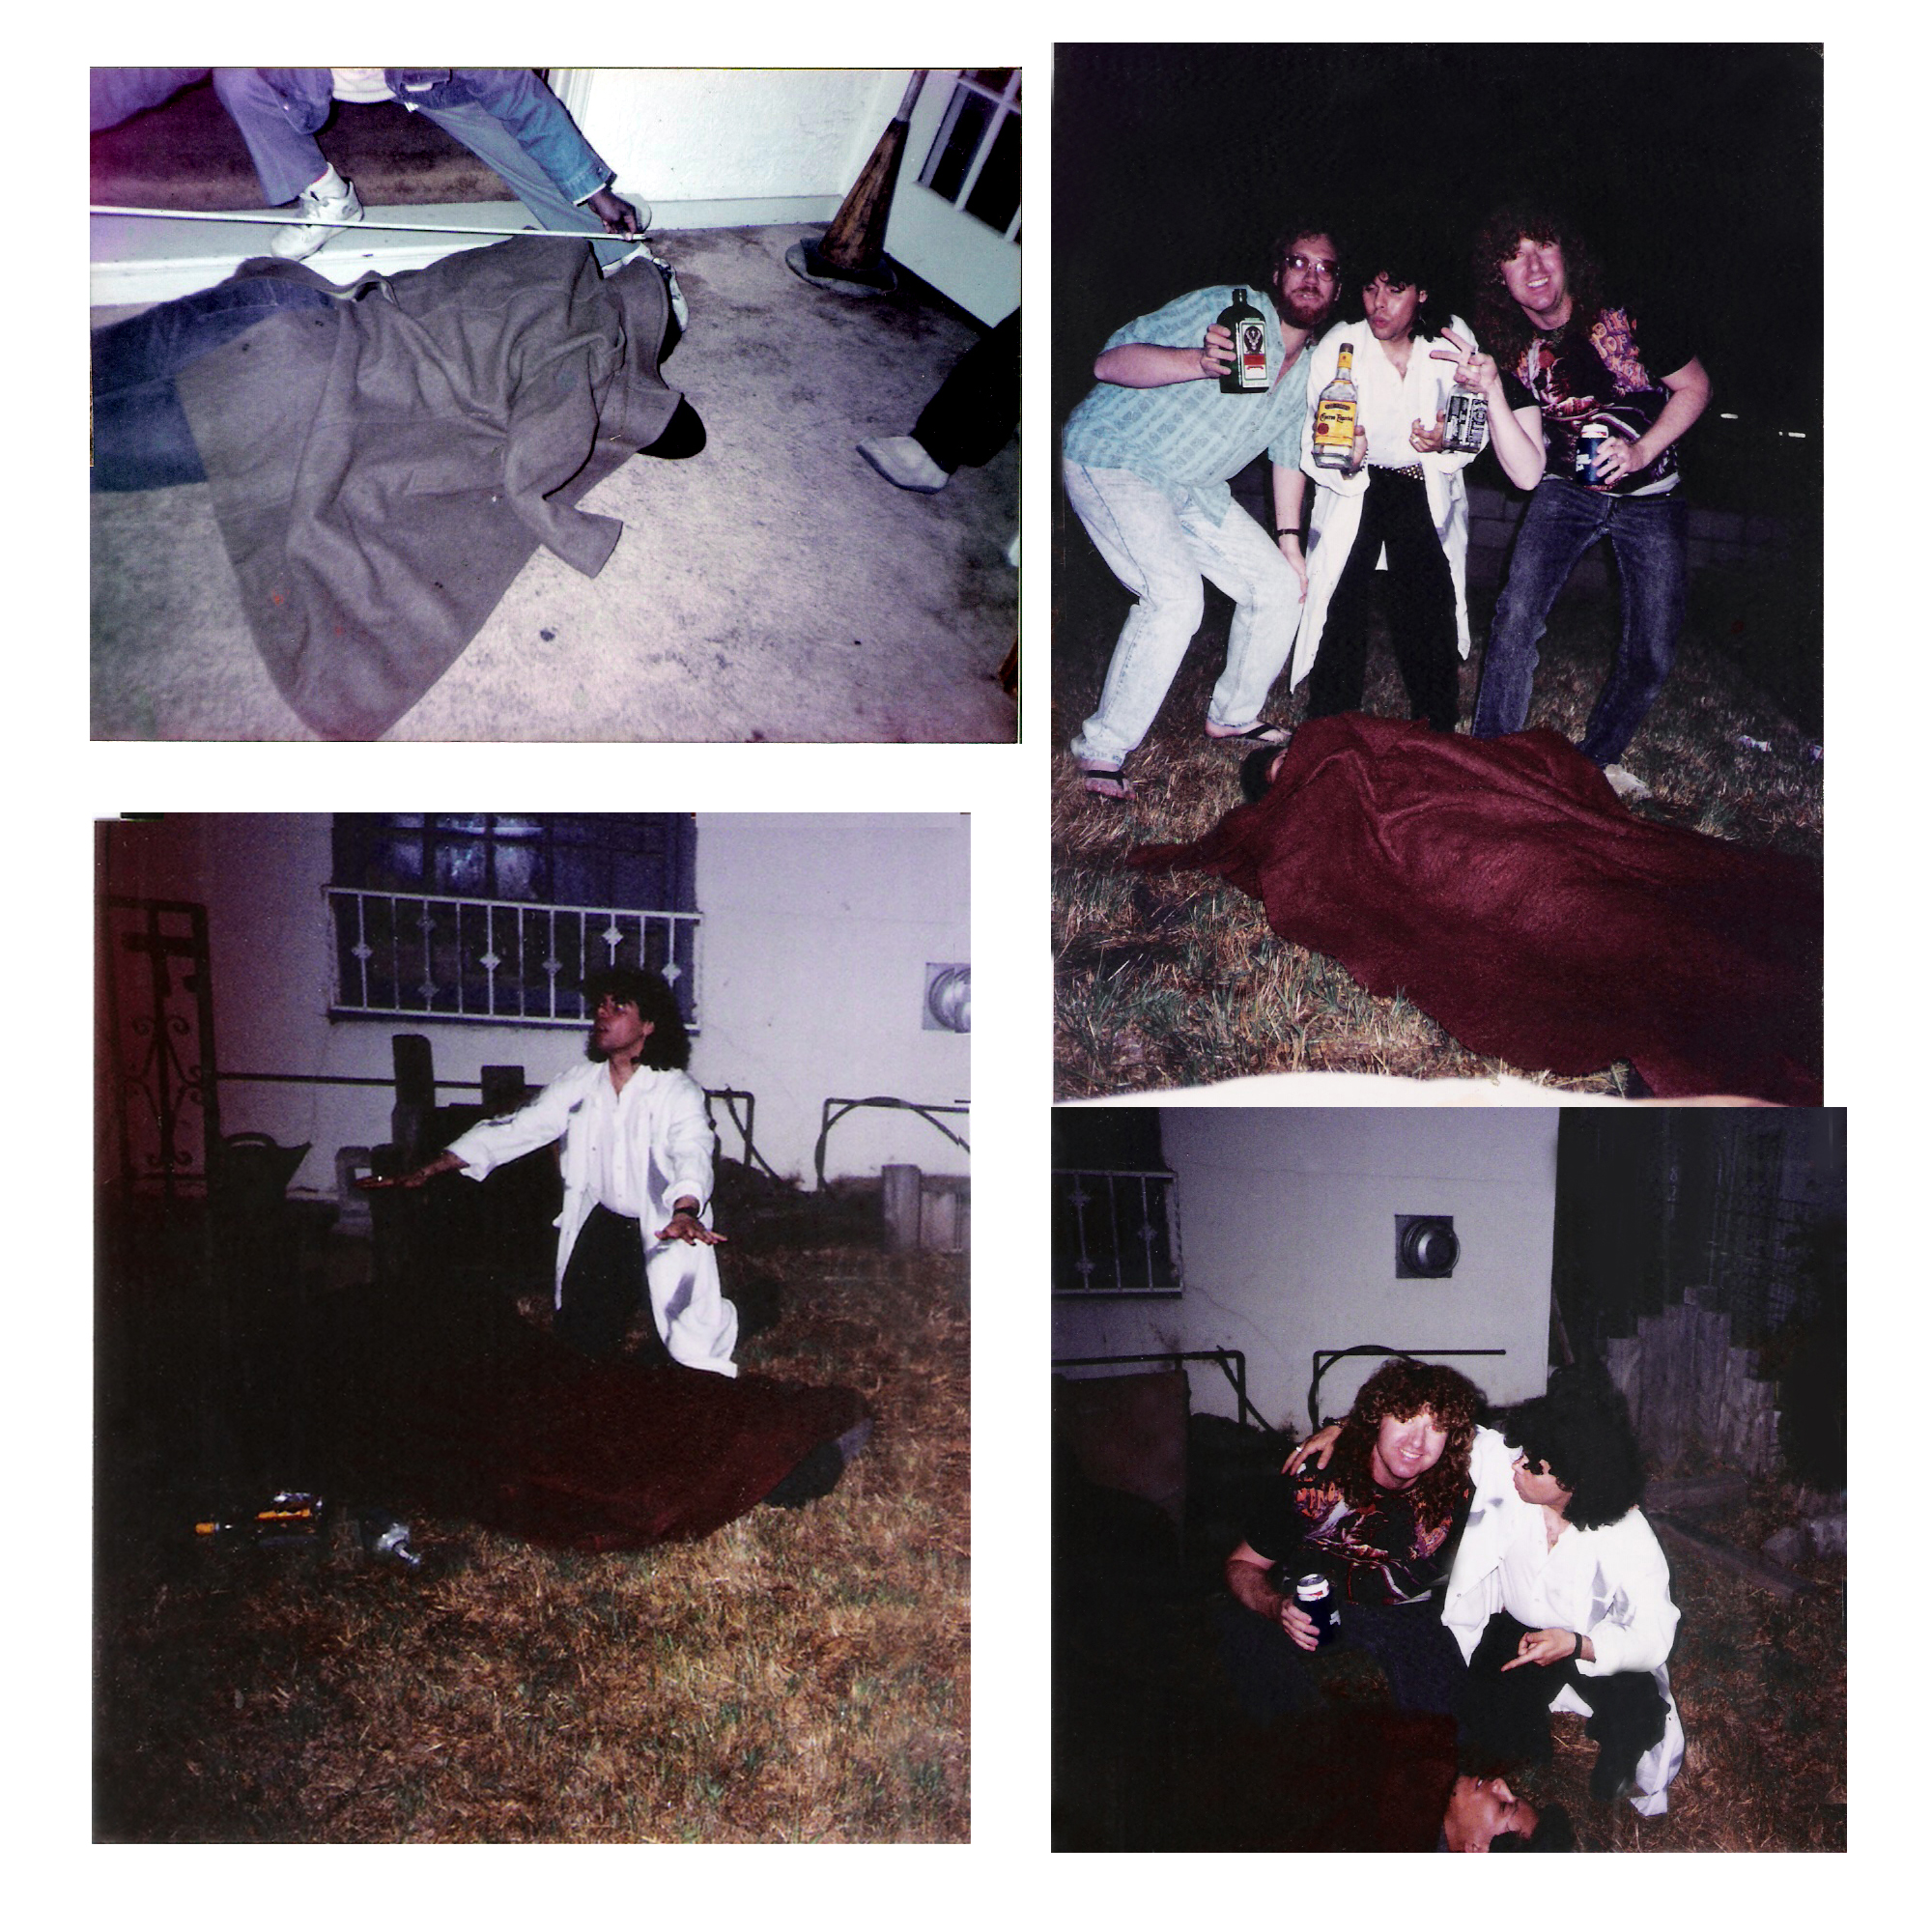 After party Aftermath with Parousia, Hollywood, CA. 1992